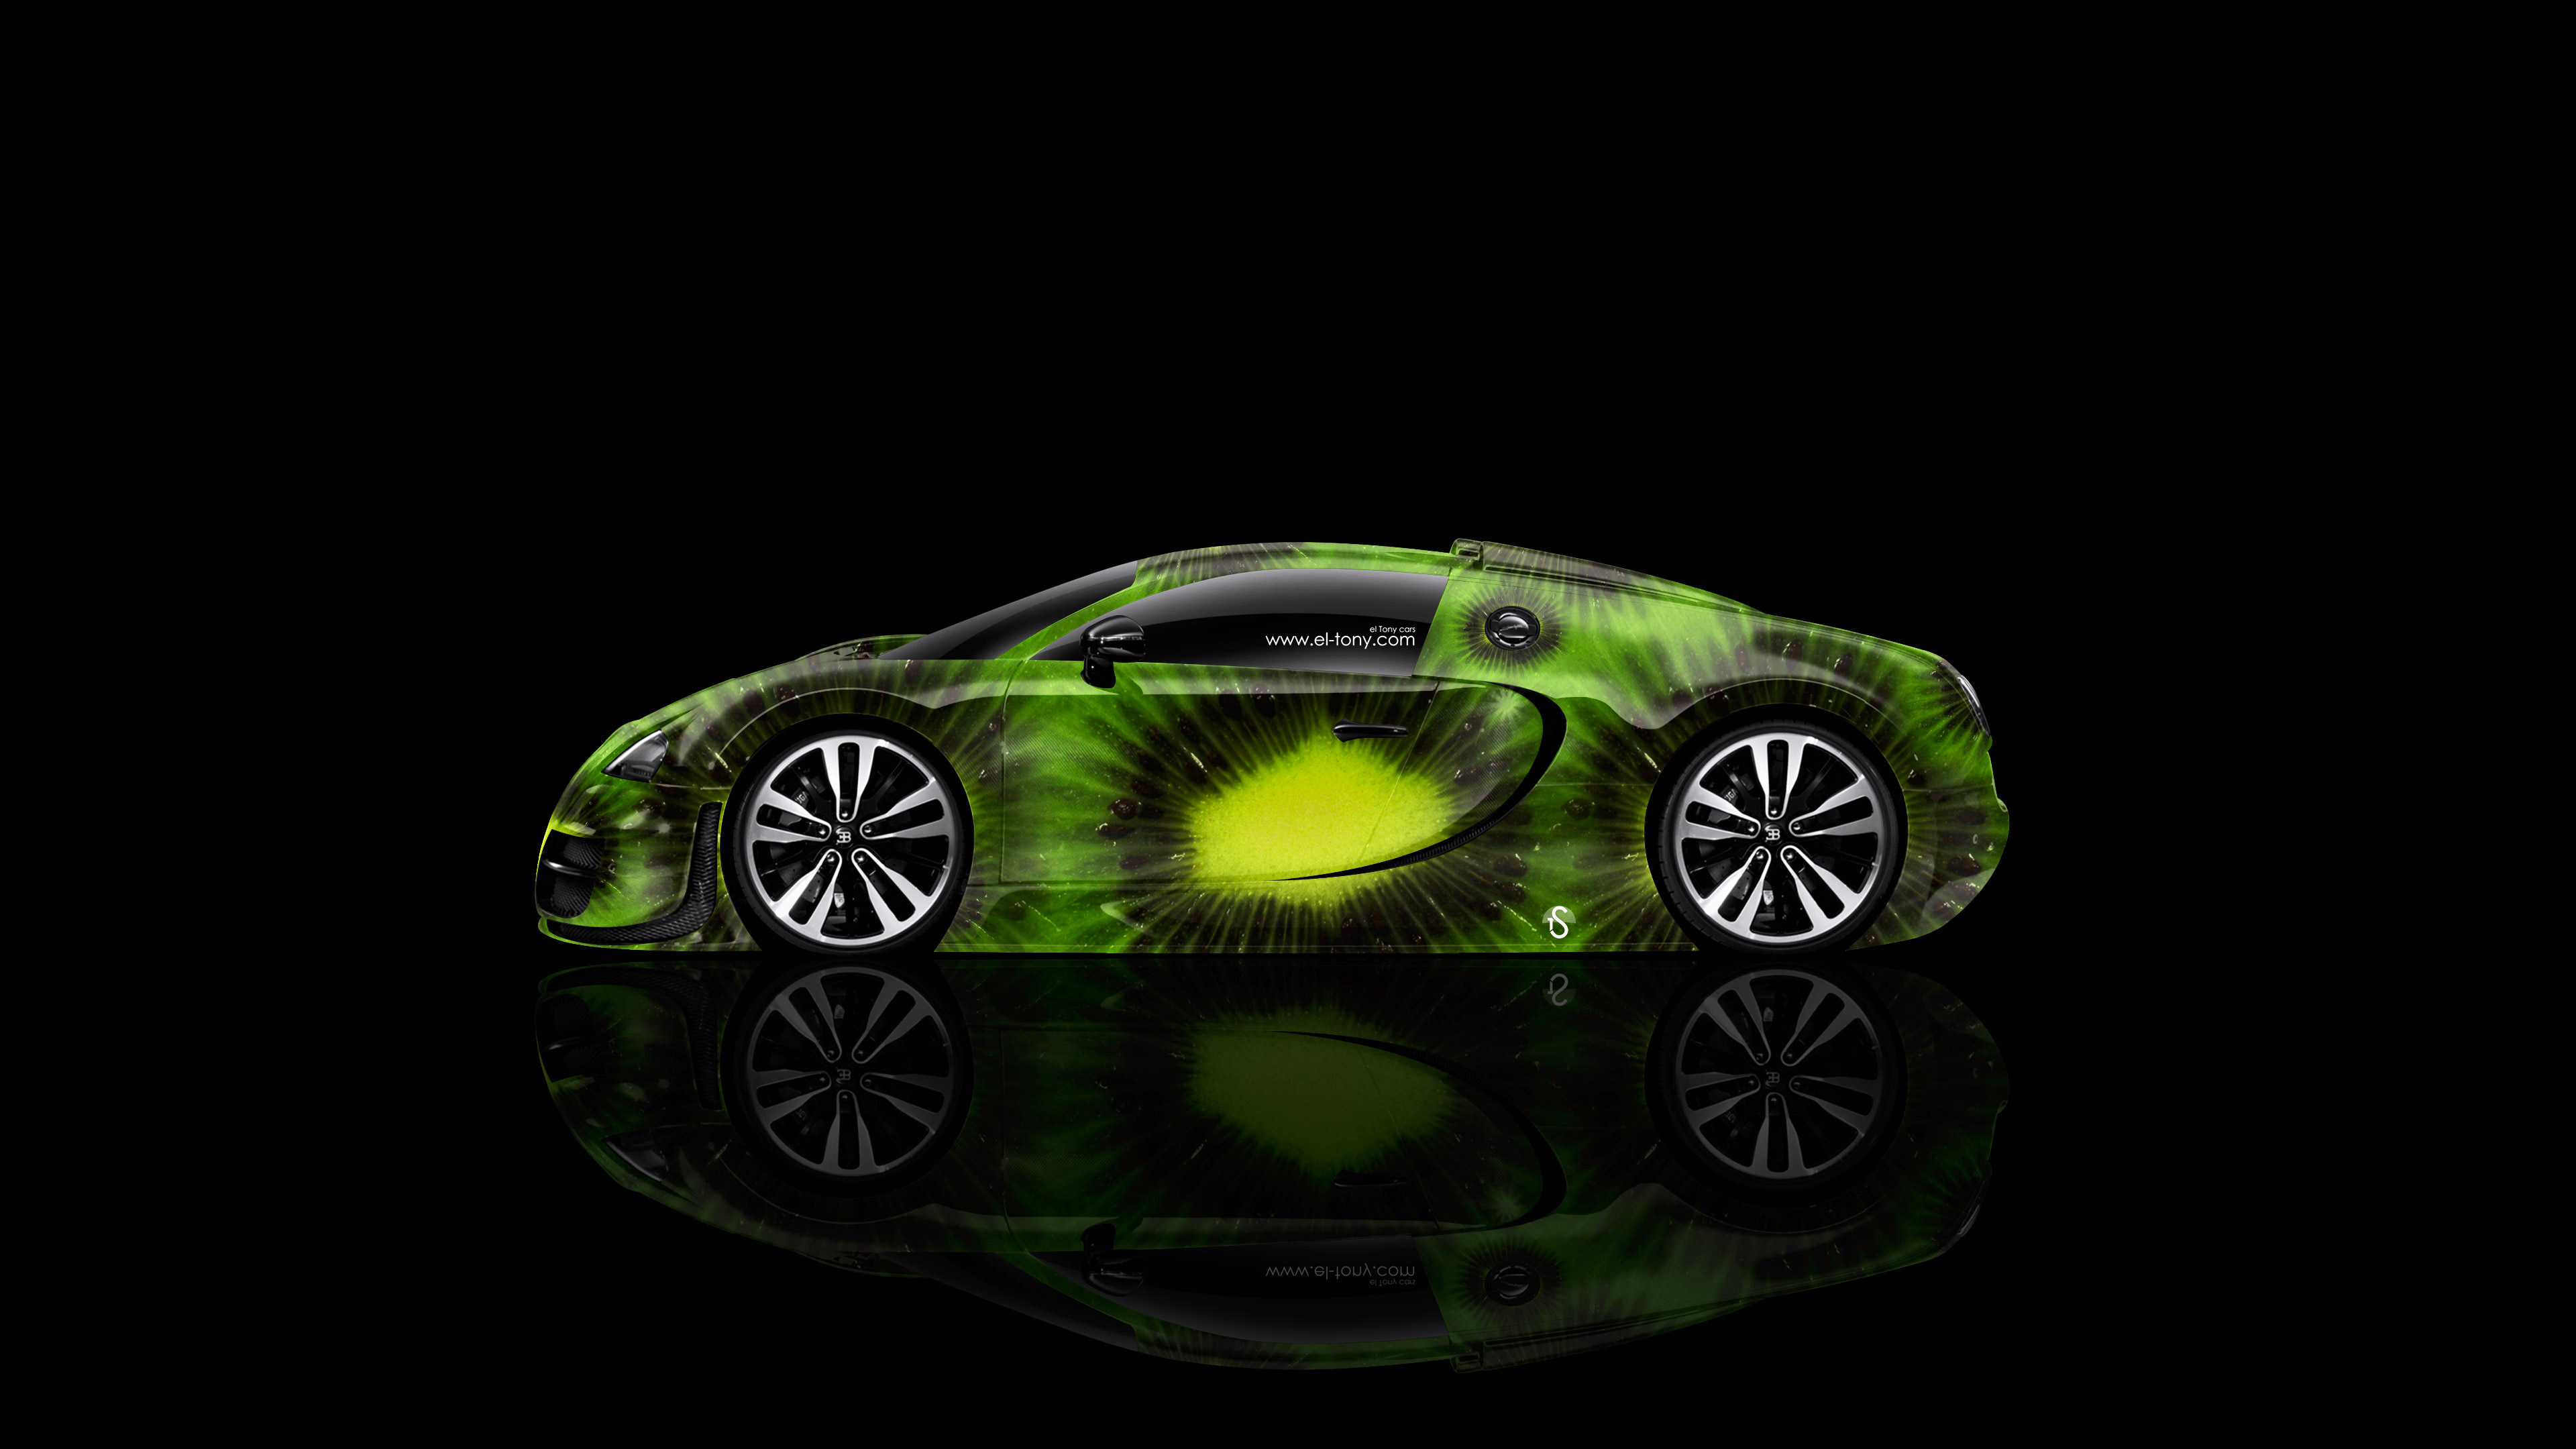 Bugatti Veyron Side Kiwi Aerography Car 2014 Green